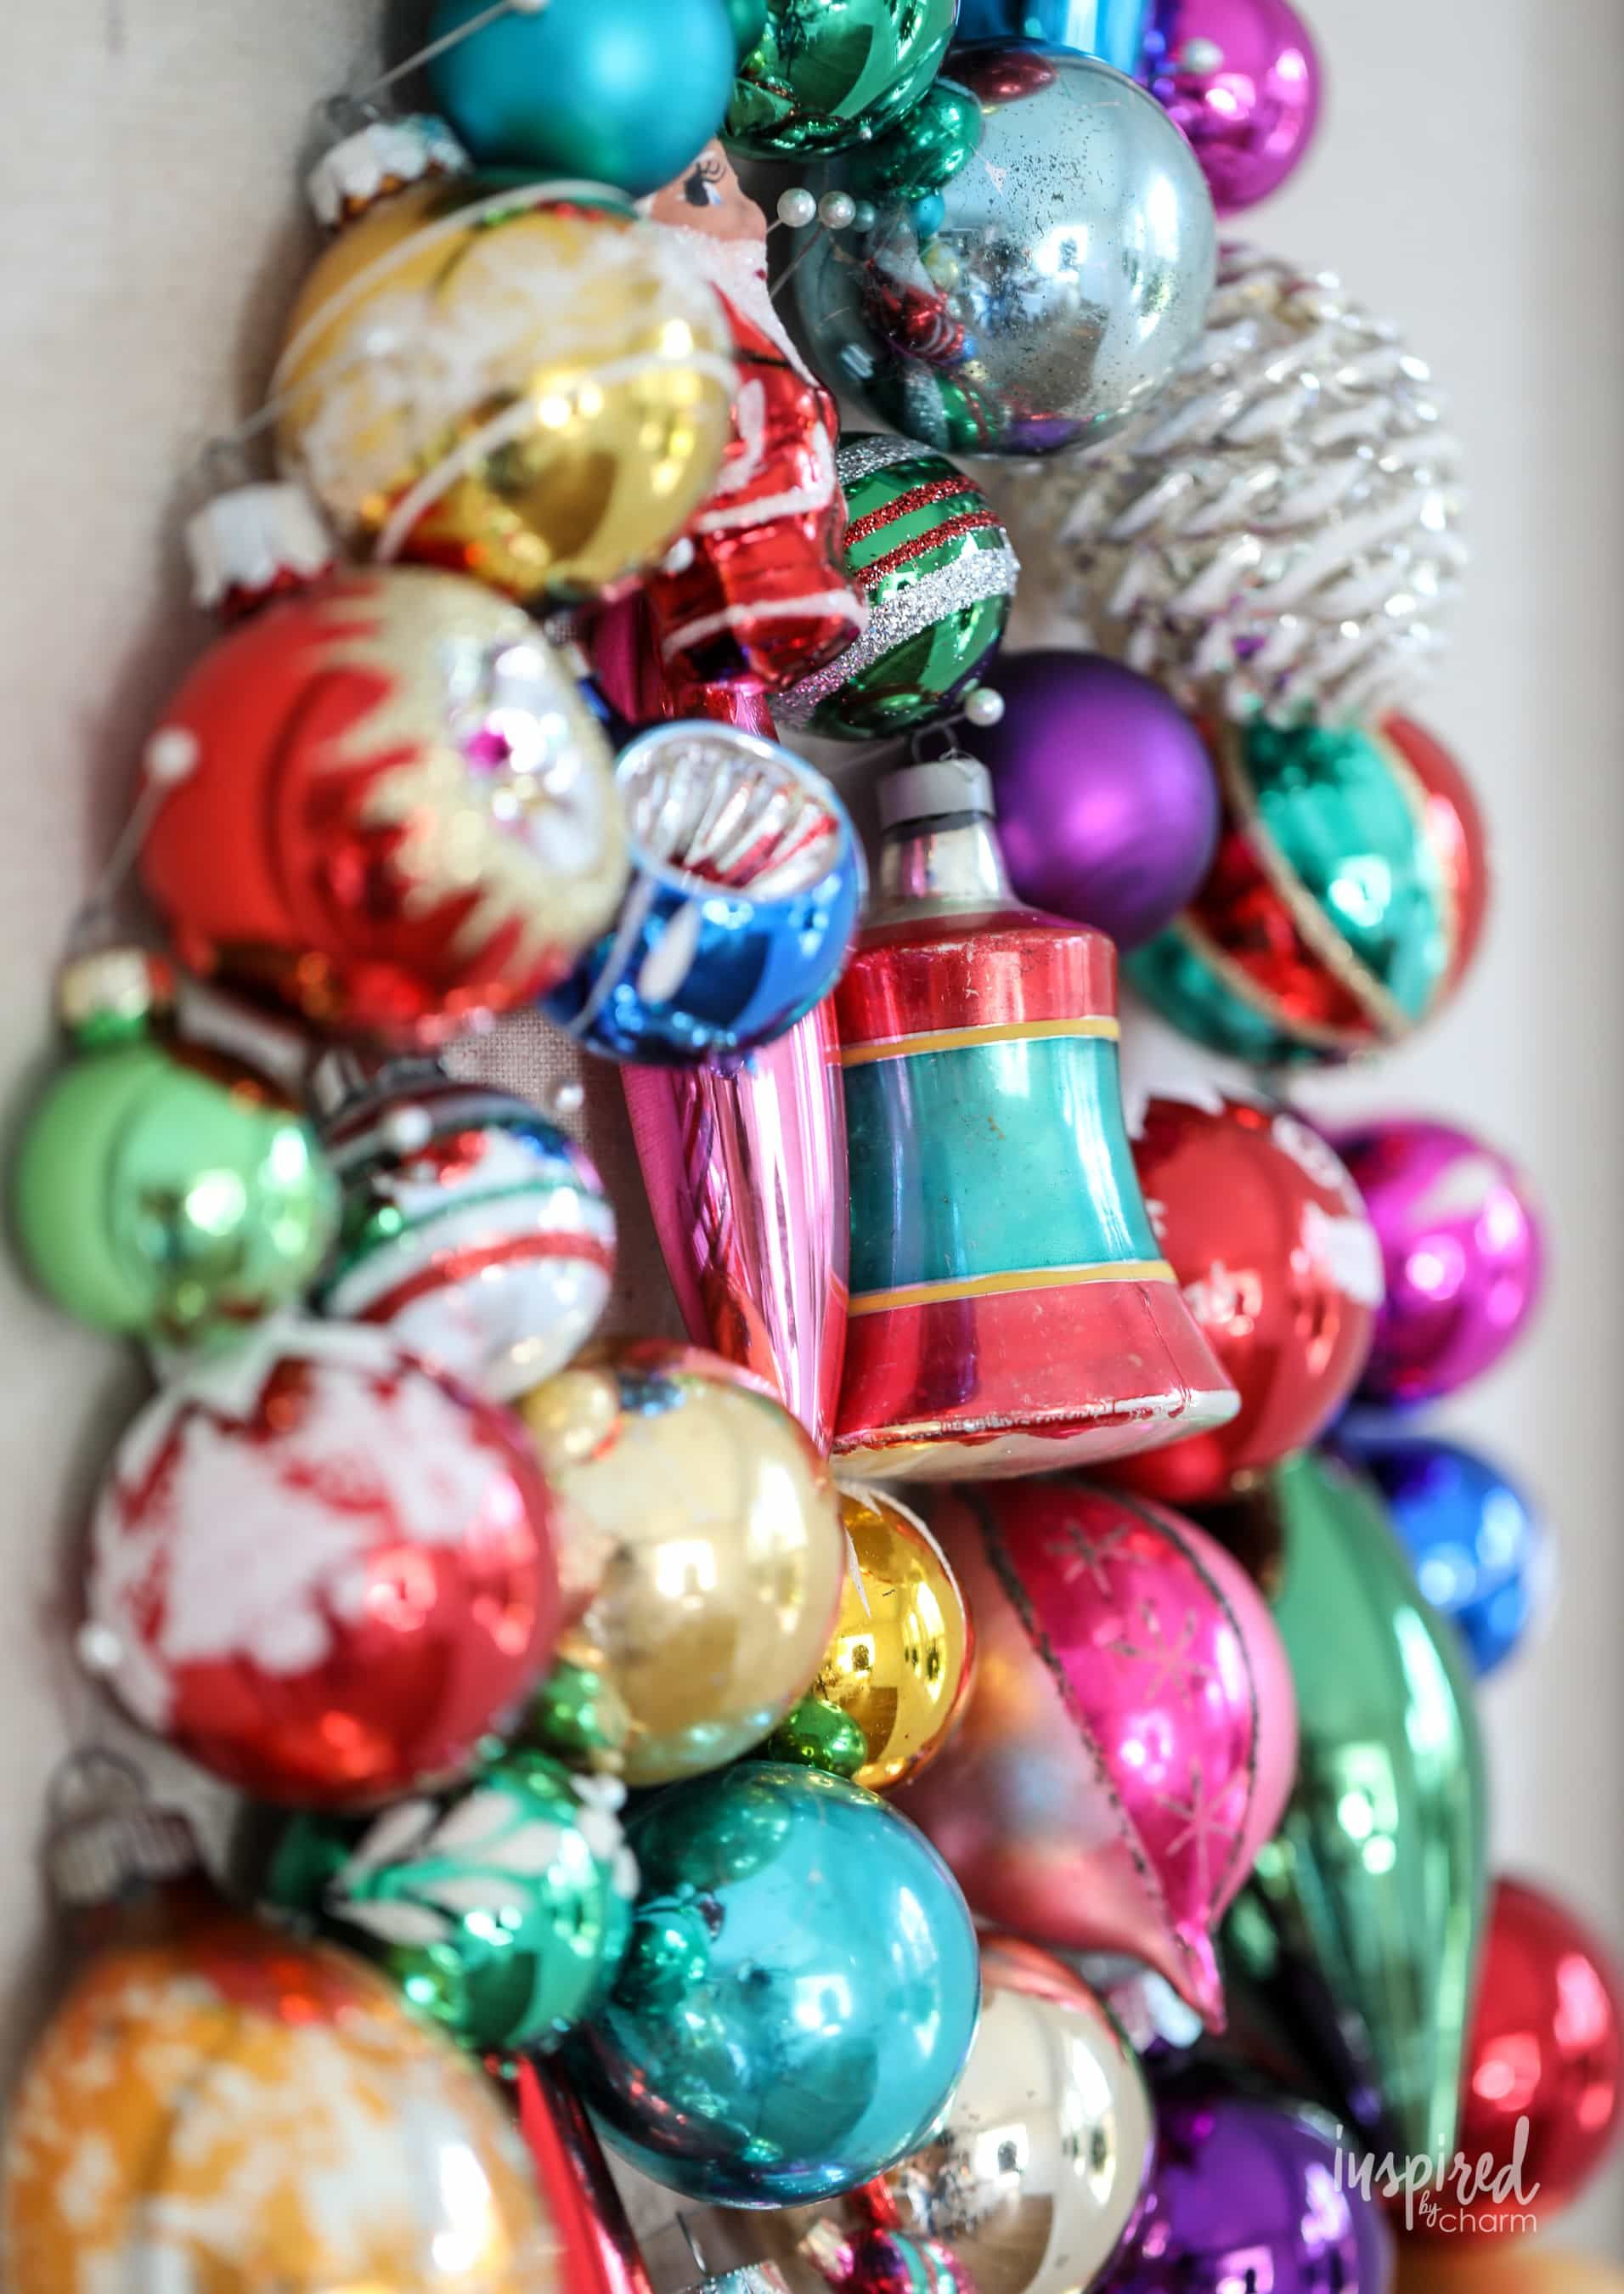 Learn How To Make This Diy Vintage Ornament Wall Decor Tree Christmas Holiday Vintage Ornament Tree Walldec In 2021 Vintage Ornaments Tree Wall Decor Diy Vintage